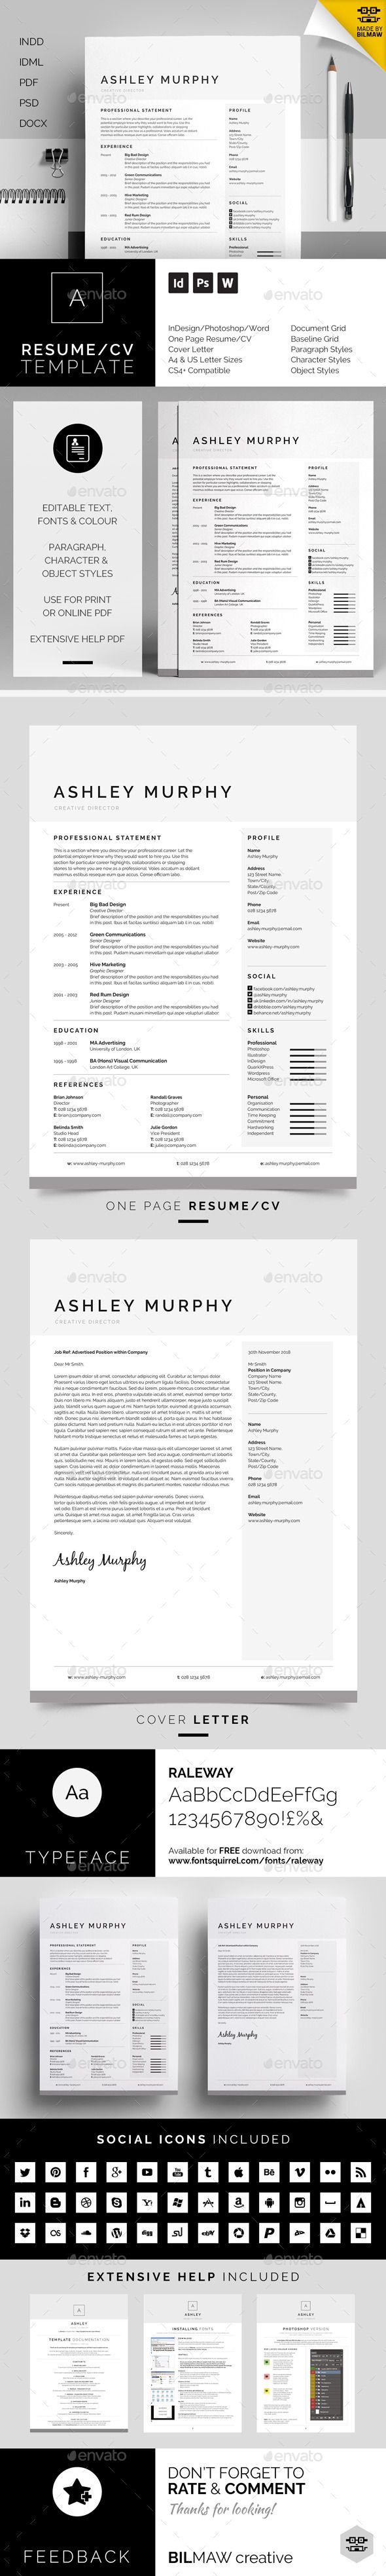 bartender job description resume%0A Resume CV  Ashley